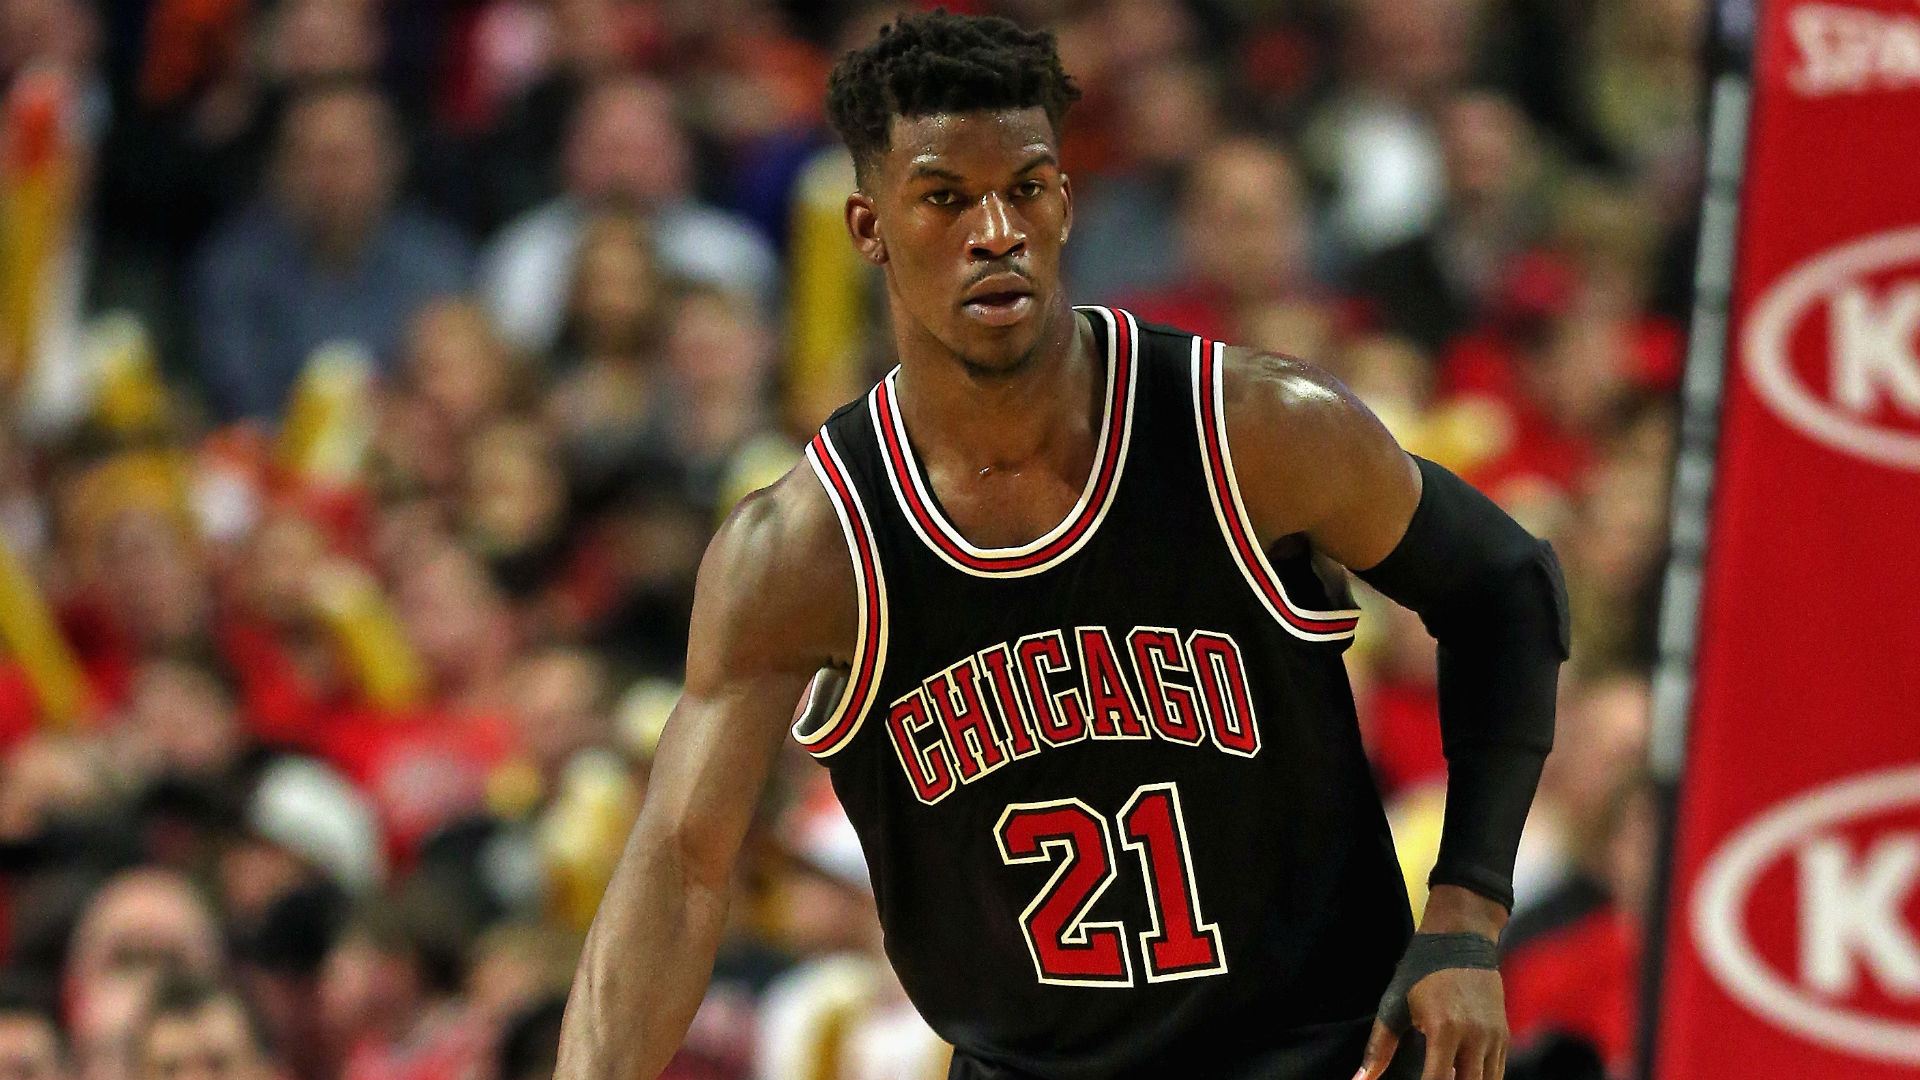 Jimmy Butler demanded money up front, and other NBA stars should too | NBA | Sporting News